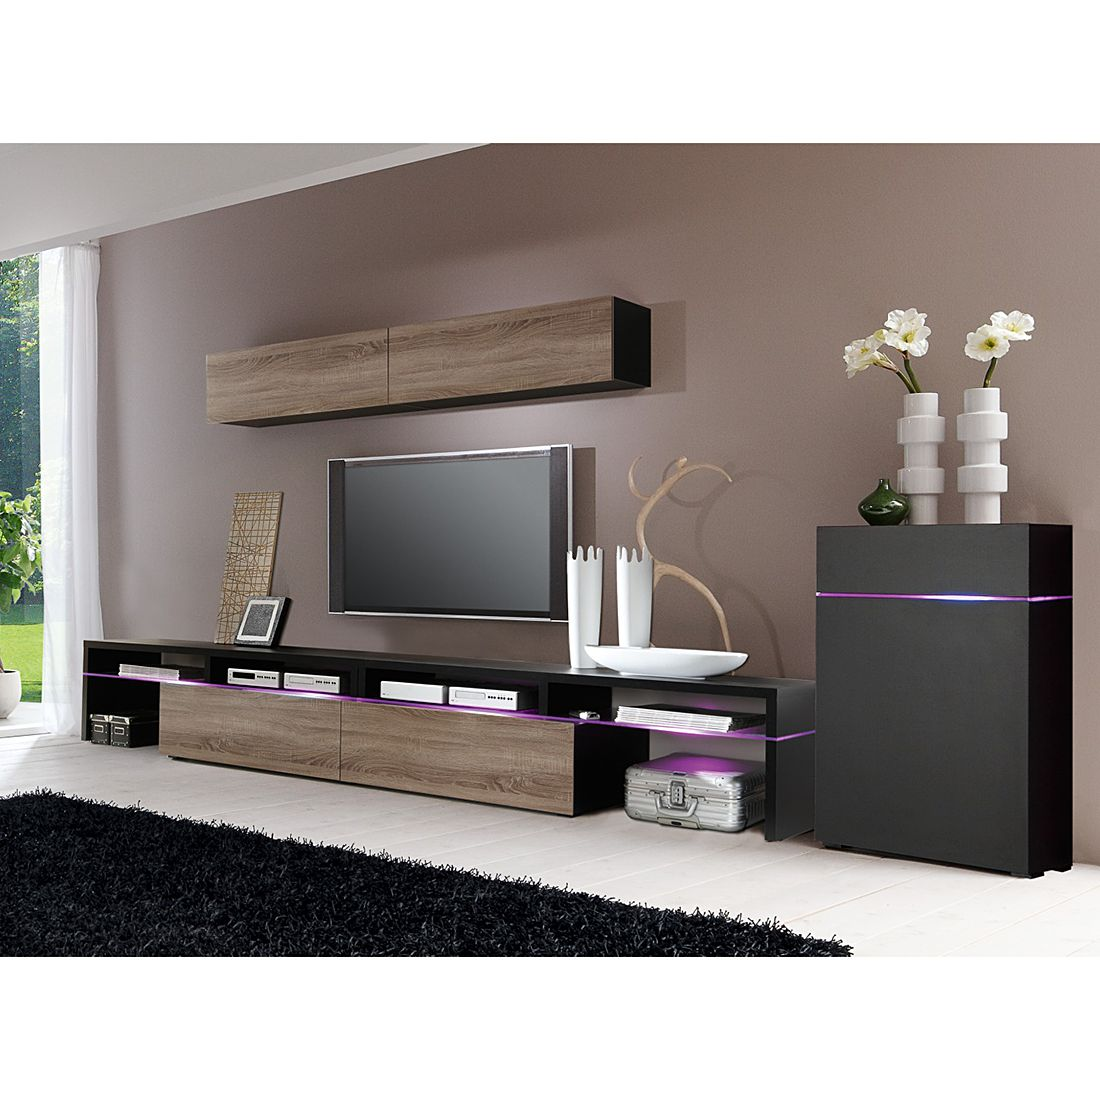 wohnw nde archive seite 35 von 39. Black Bedroom Furniture Sets. Home Design Ideas